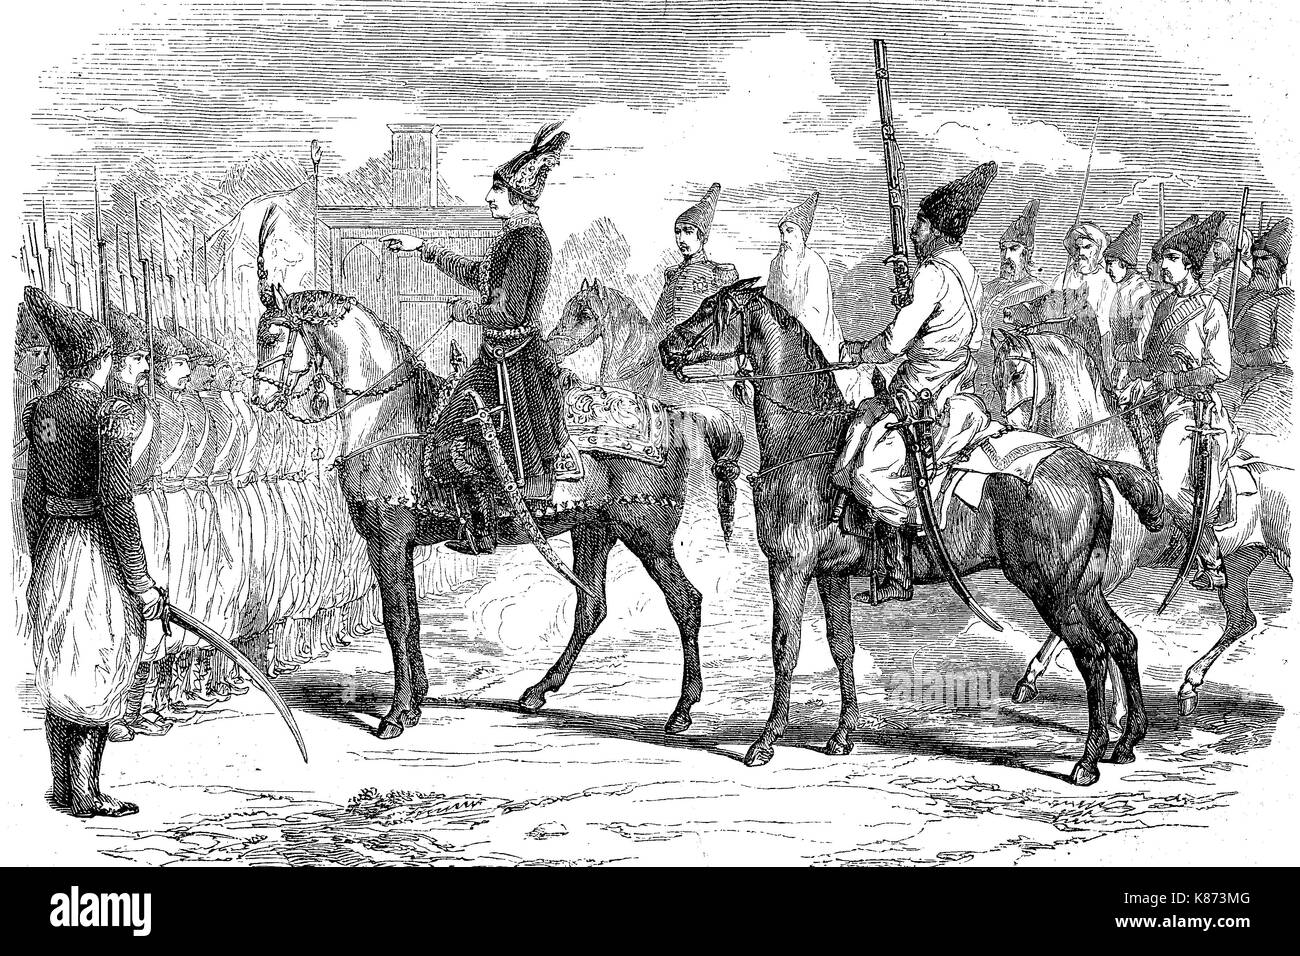 Crimean War, Naser al-Din Shah Qajar, 1831- 1896?, also Nassereddin Shah Qajar, was the King of Persia 1848 - 1896, Digital improved reproduction of an original woodprint from the 19th century - Stock Image